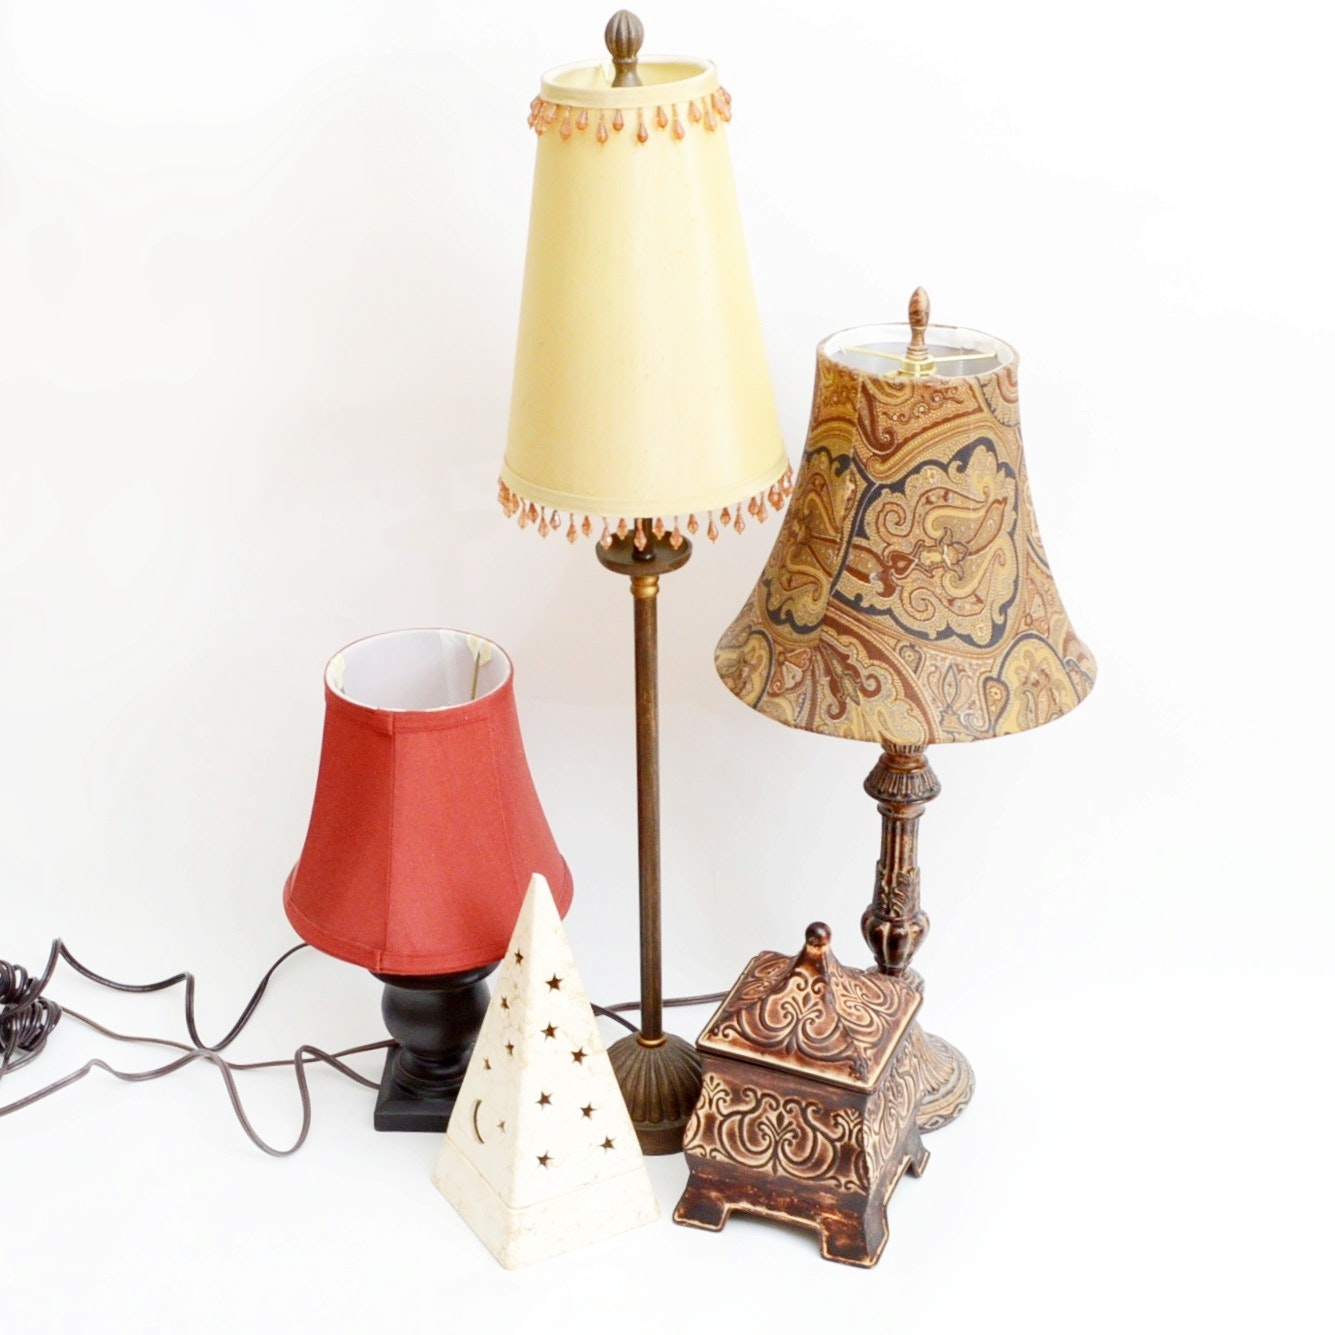 Decorative Lamps And Home Decor ...